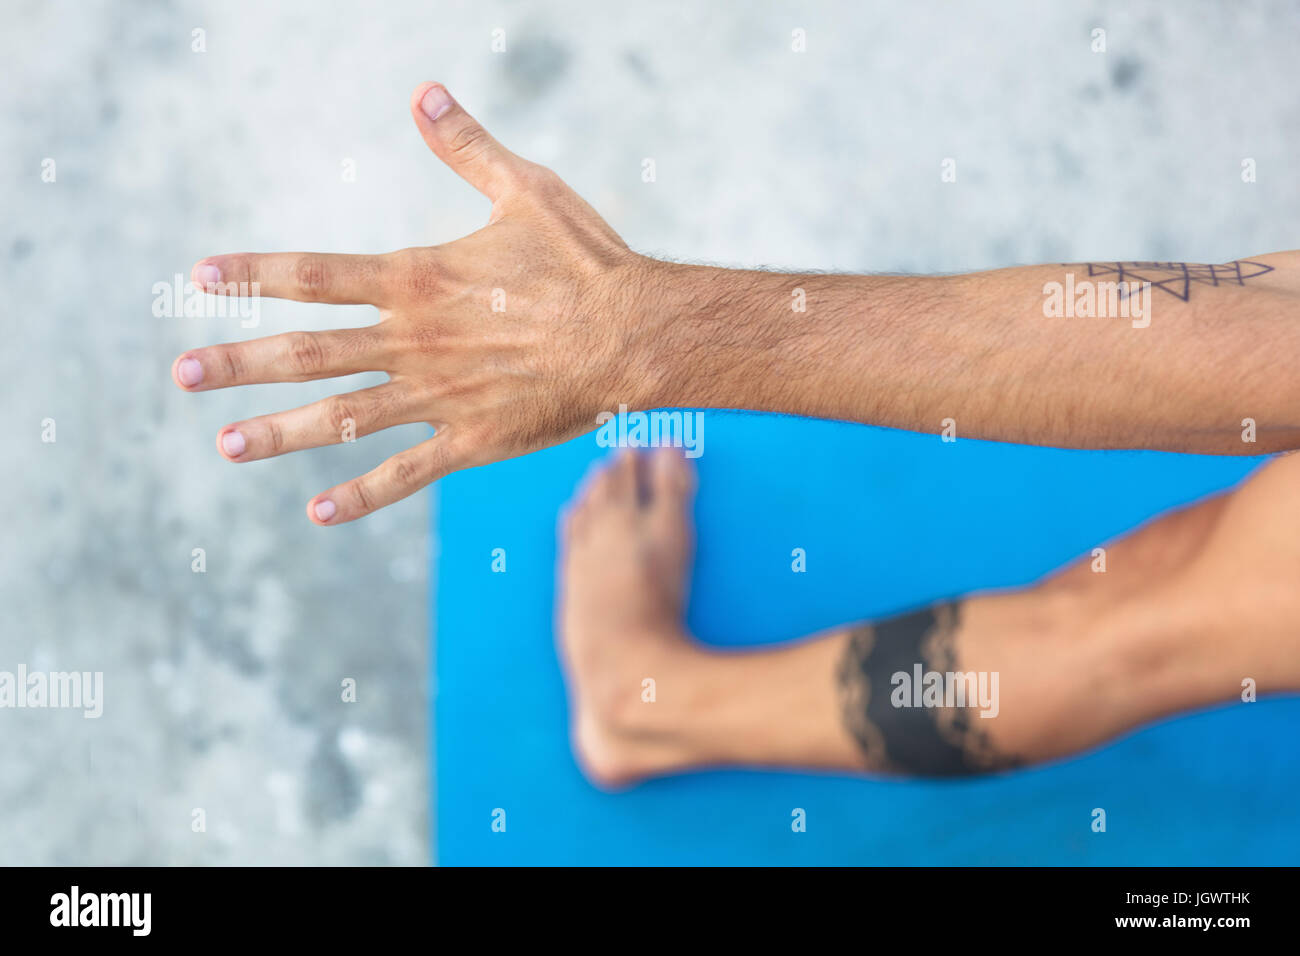 Overhead view of man practicing yoga, standing on yoga mat with arm outstretched - Stock Image